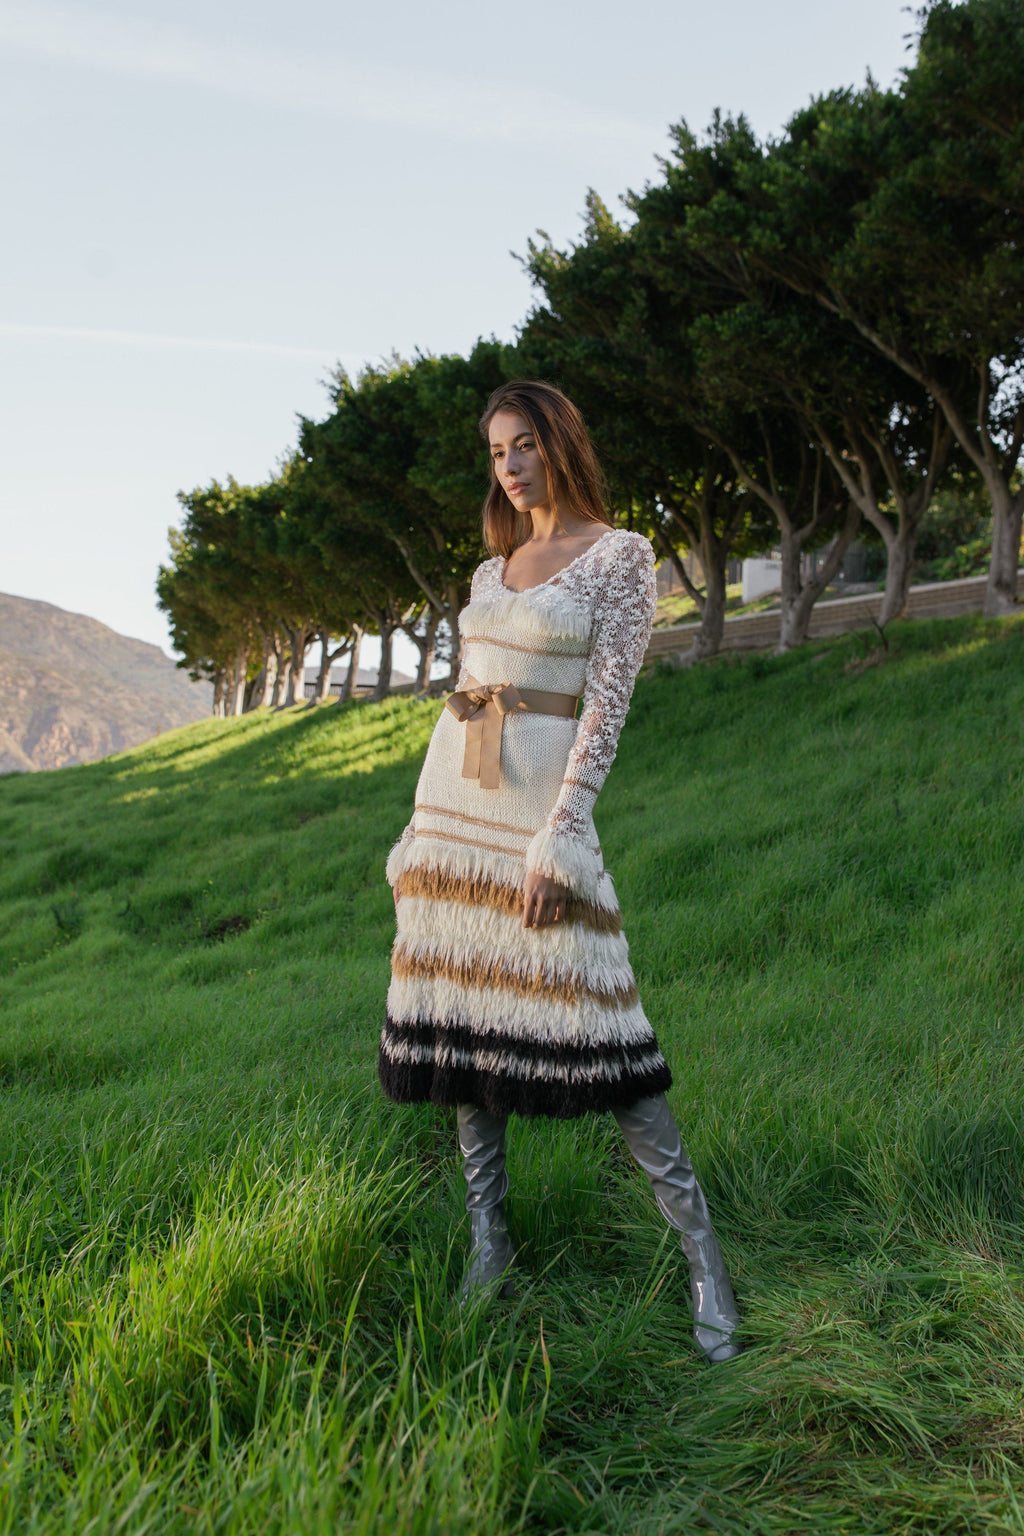 Brown Sundown Handmade Knit Dress - dress knitwear